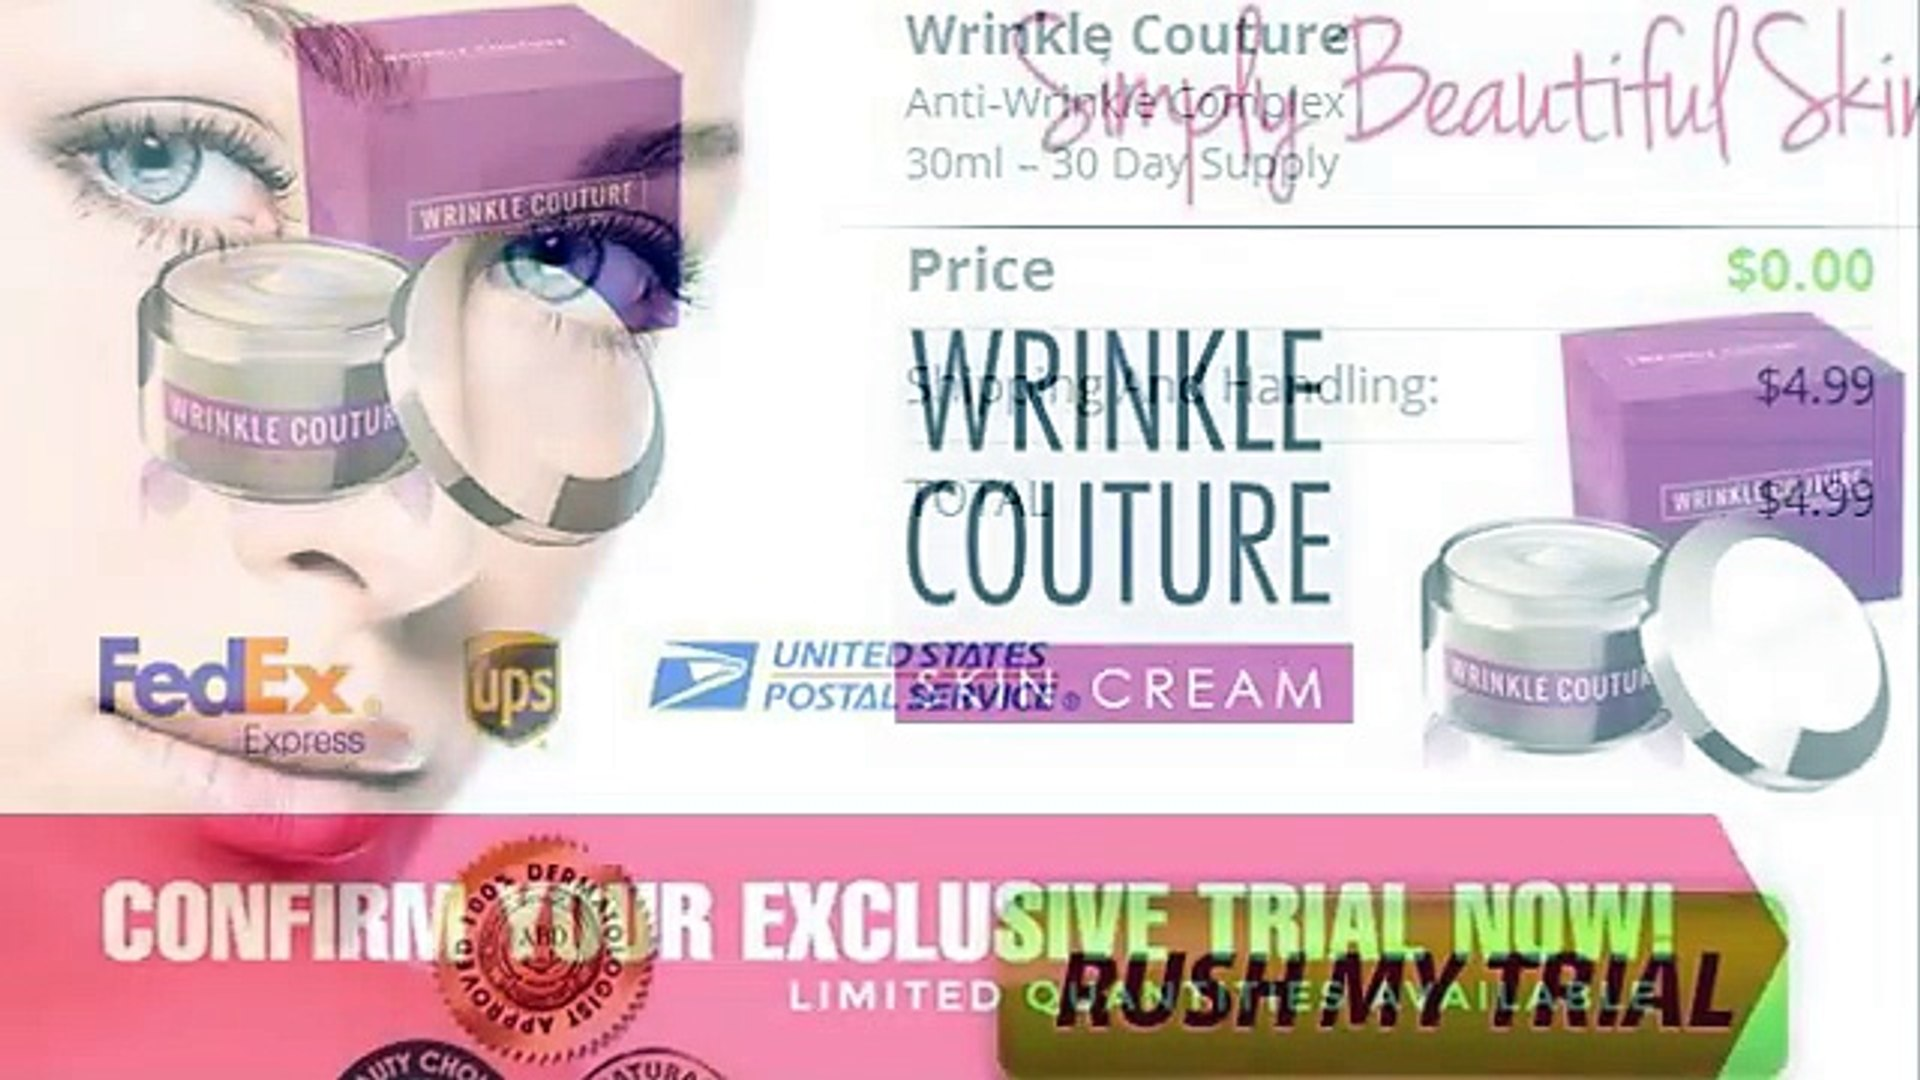 Wrinkle Couture Skin Care Cream Does It Really Work Video